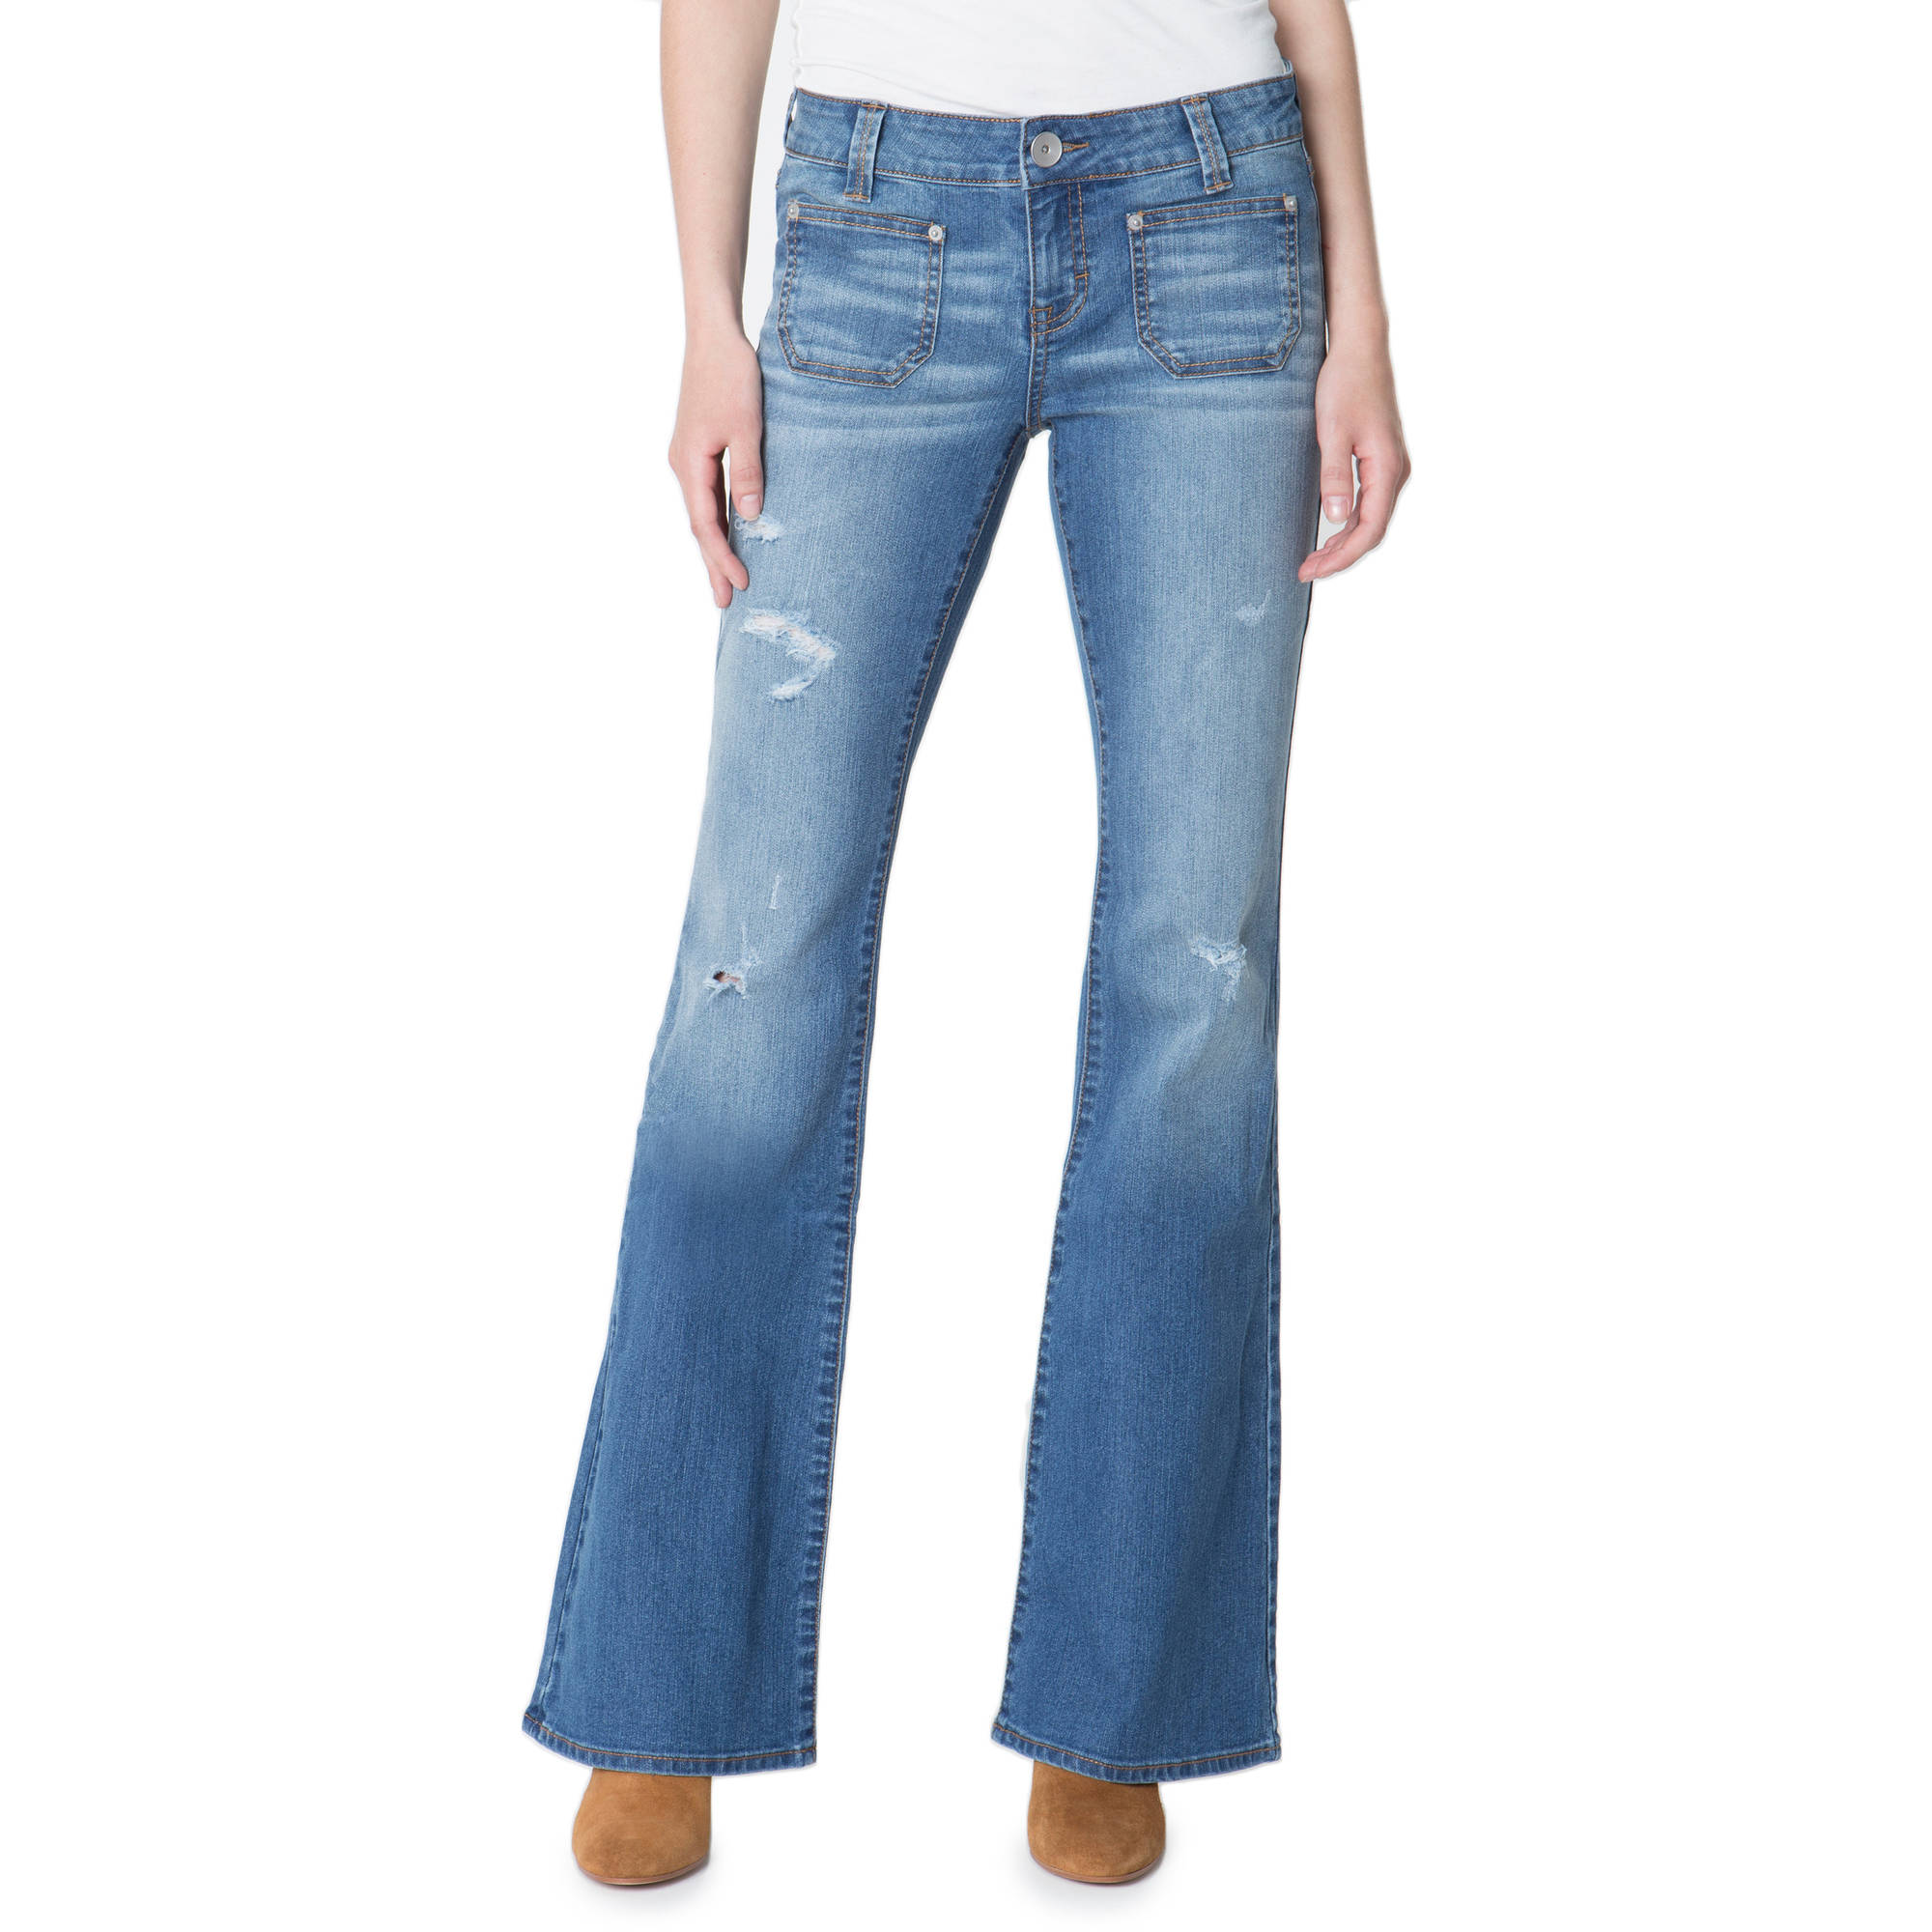 G21 Juniors' Flared Jeans with Patch Pockets